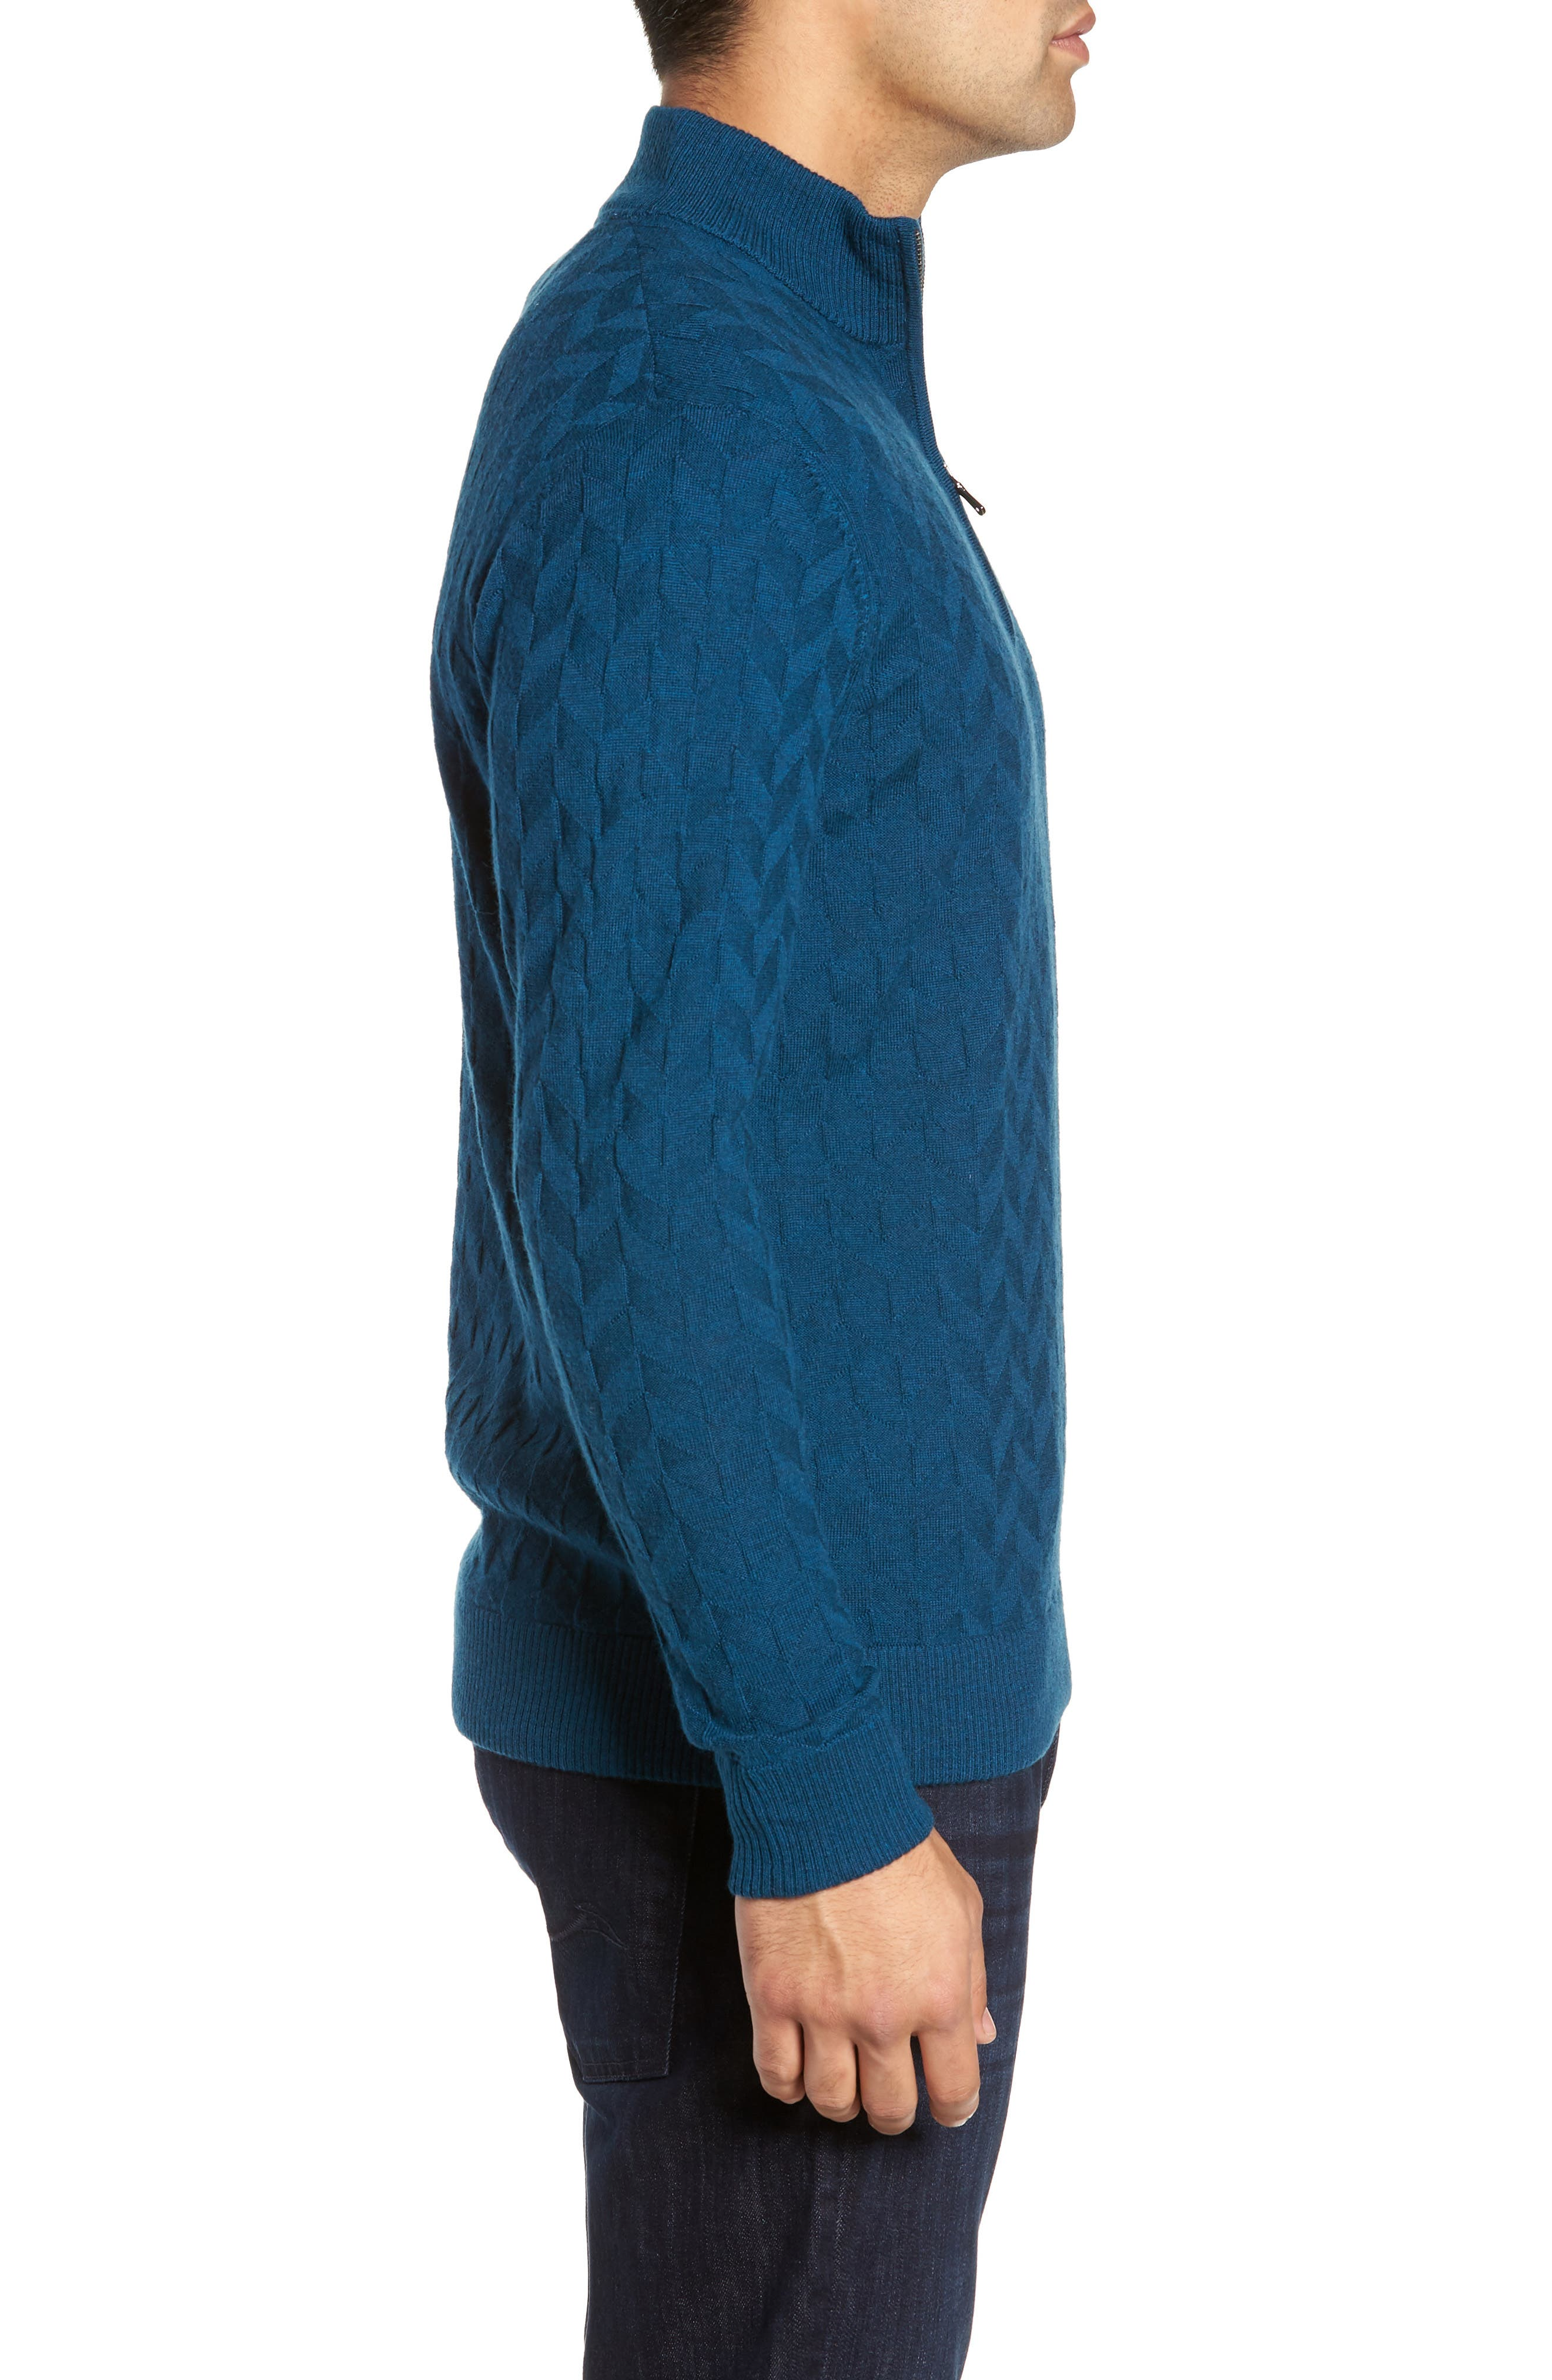 Rowley Classic Fit Quarter Zip Sweater,                             Alternate thumbnail 3, color,                             TEAL